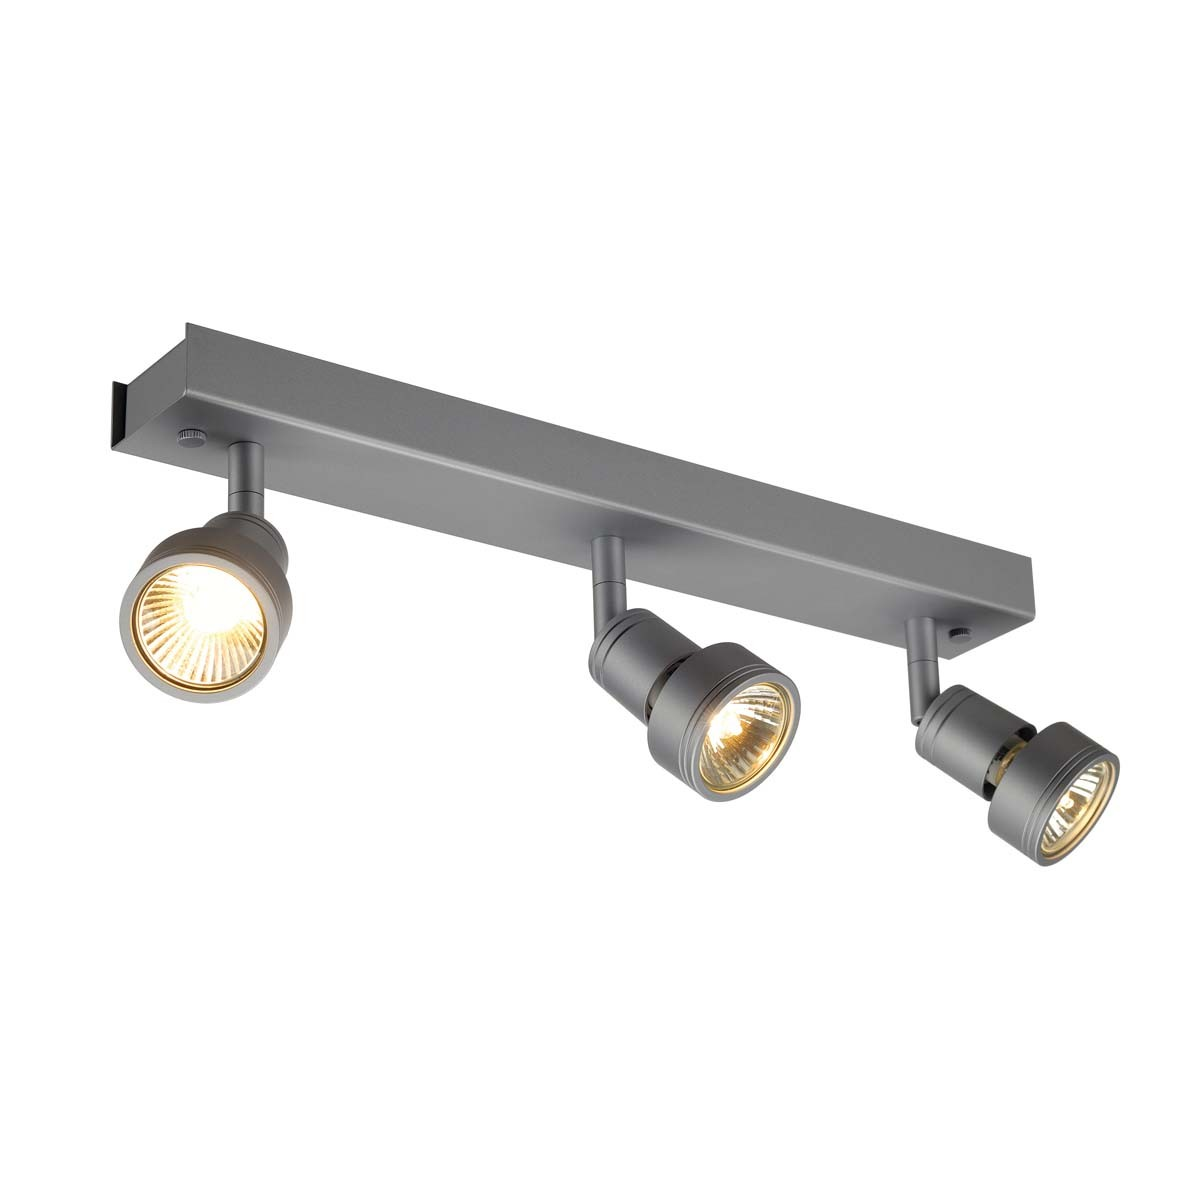 SLV 147384 Puri 3 3x50W Silver Grey Ceiling & Wall Light